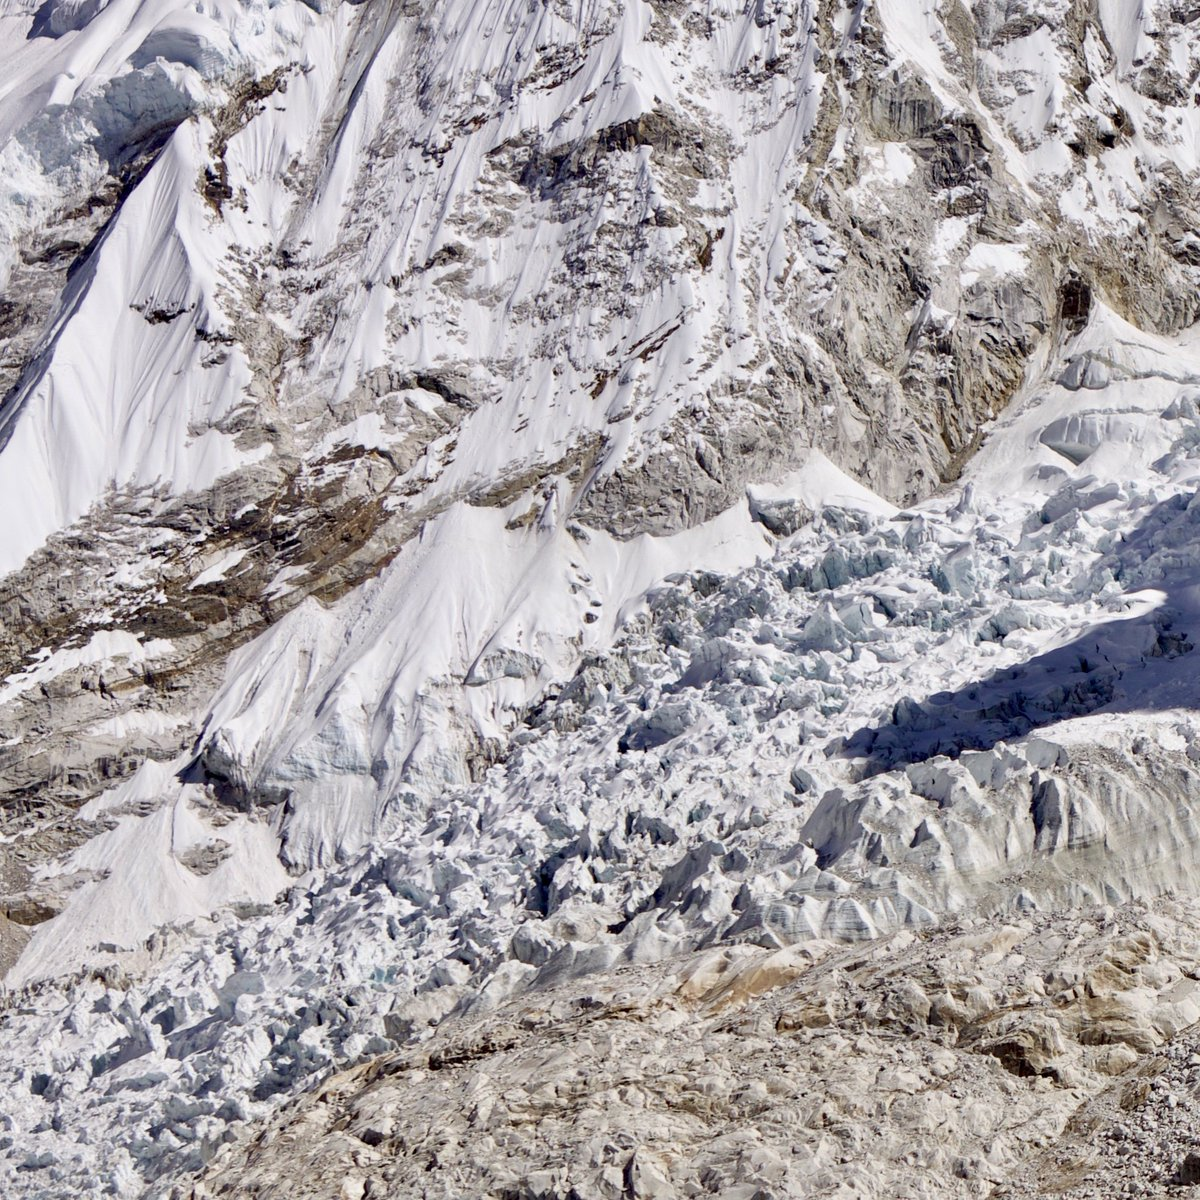 Dawa is at the base camp and will go through the khumbu ice fall to camp one. #hamasteel #hamaquality #madeinnepal #steelforlife #good #construction #practice #nepal #engineering #rebars #civilengineering #structuralengineering #HAMA500D #reconstruction #gcp #steel #rebars<br>http://pic.twitter.com/pHwqyASK5O